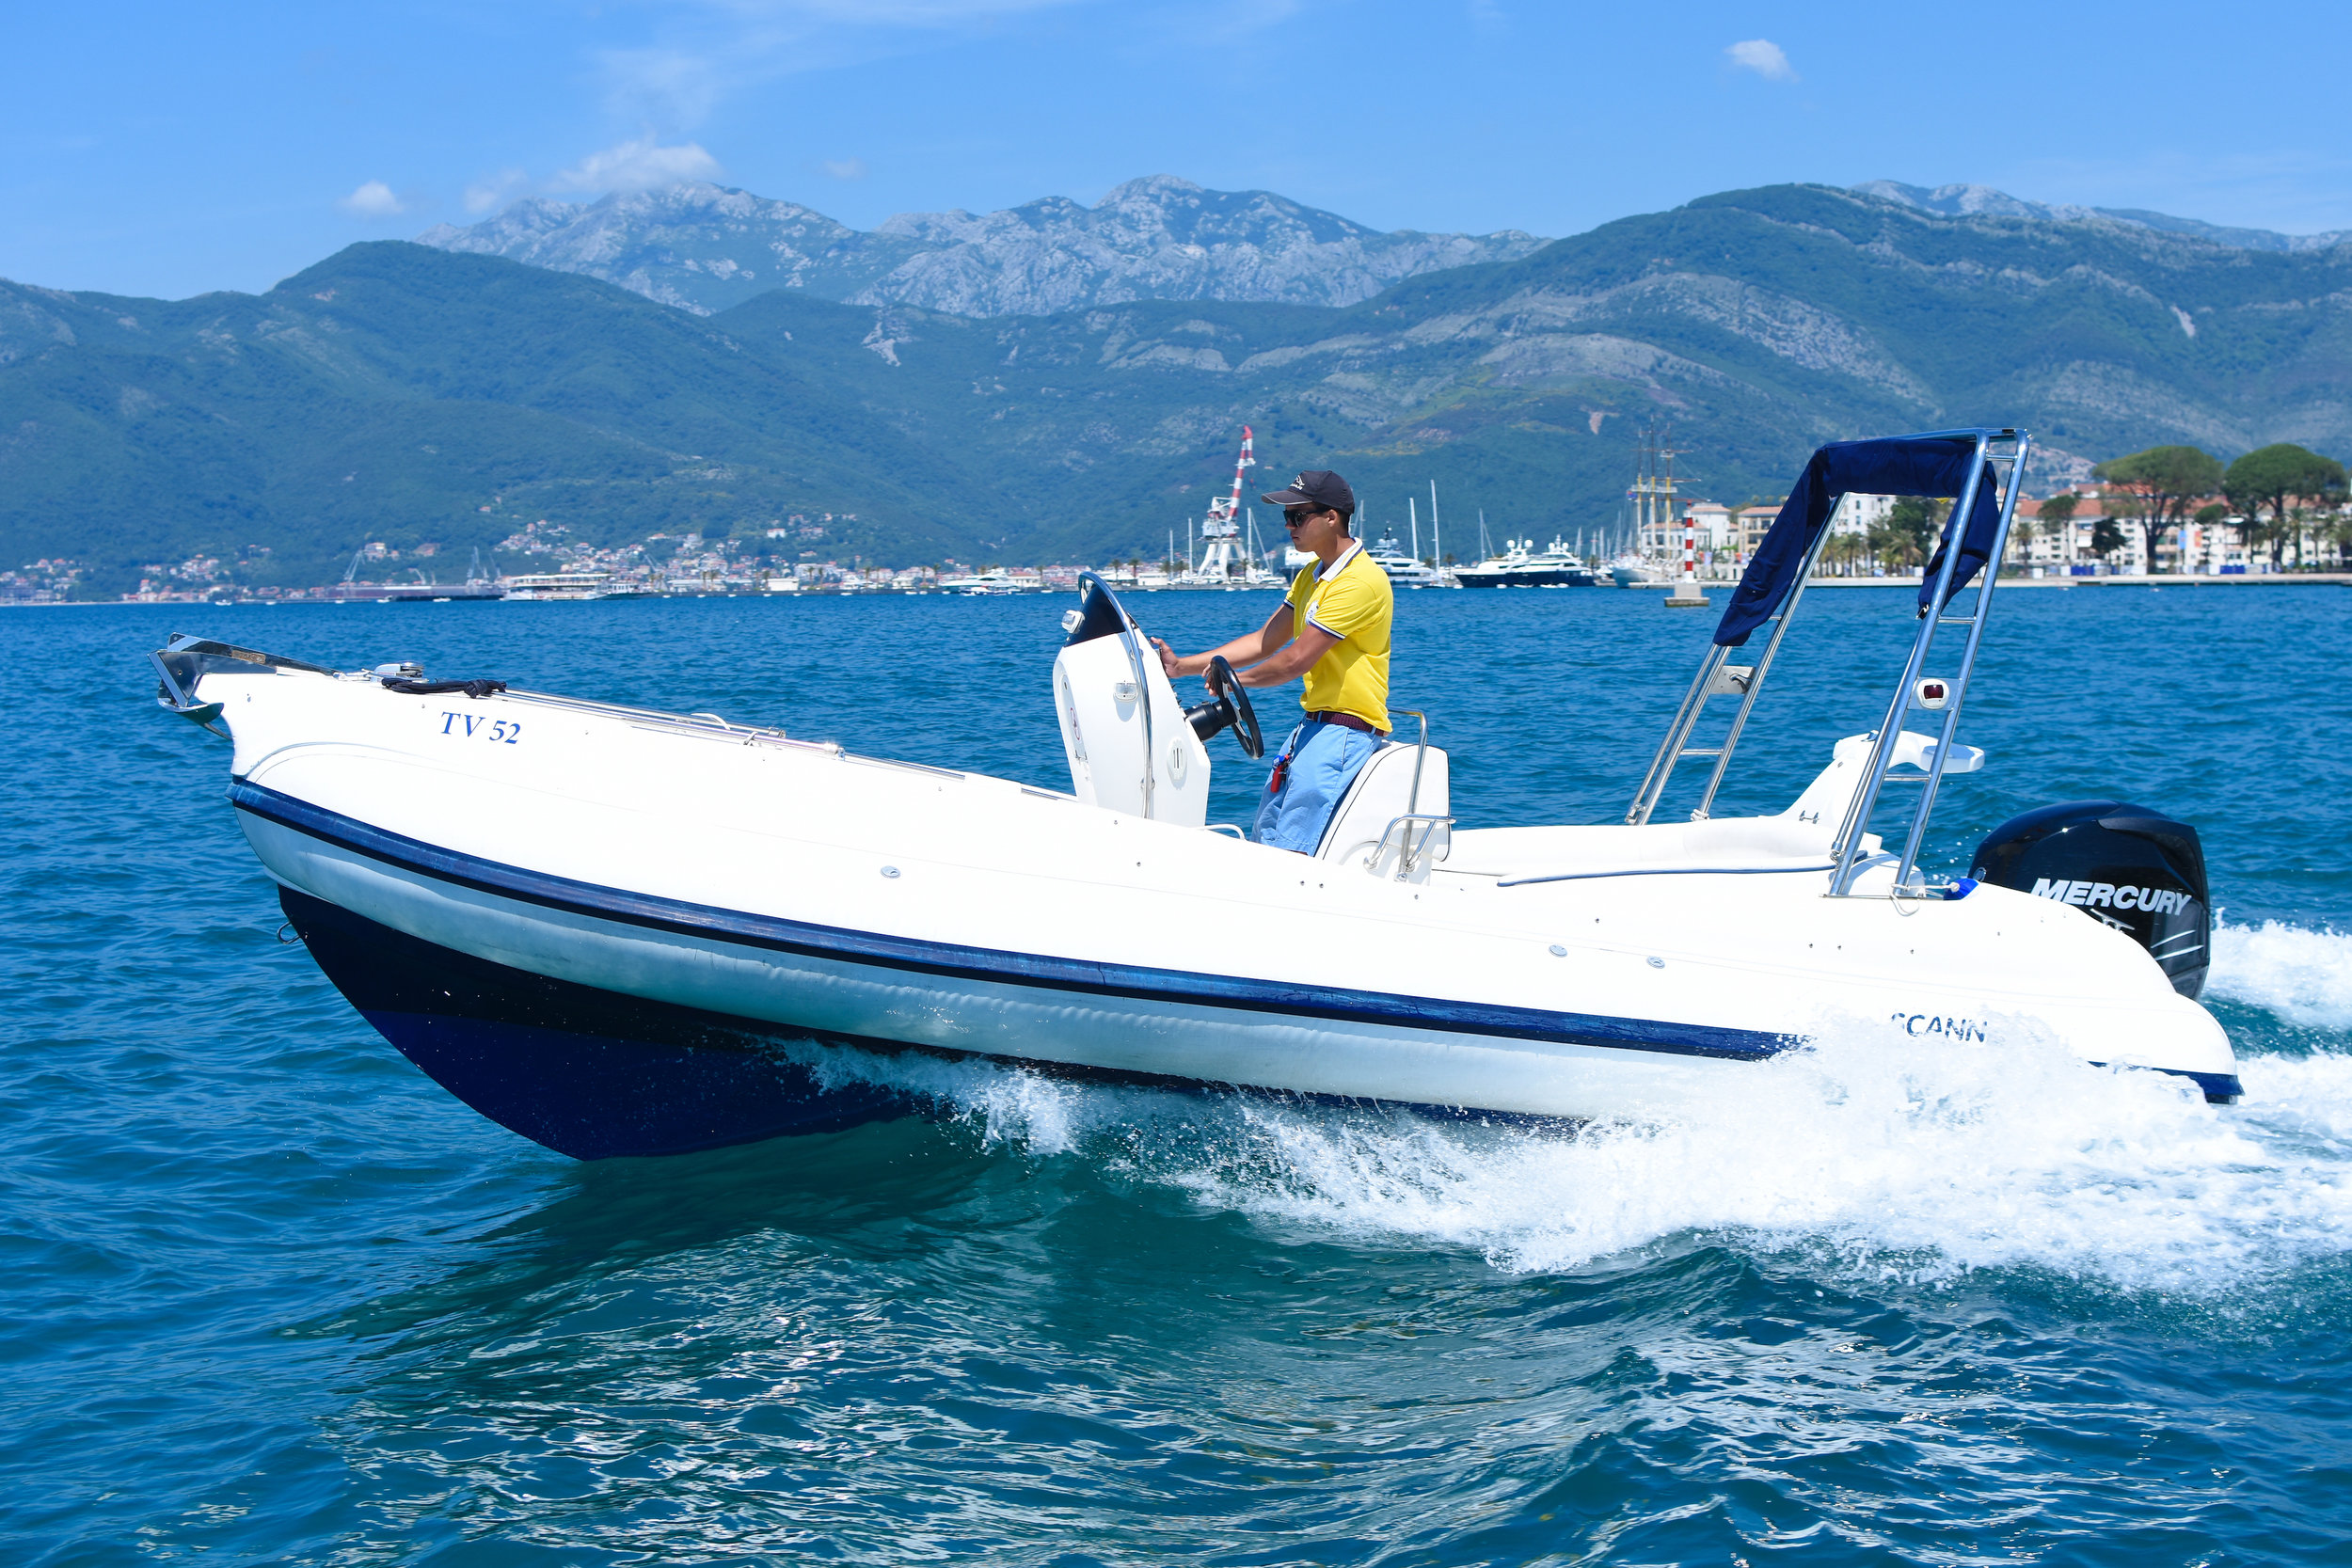 SPECIFICATIONS - CATEGORY: Motor boat/Sports boat BRAND & MODEL: Scanner Envy 630YEAR BUILT: 2004LENGHT: 6.3 m / 20.67 feet BEAM: 2.55 m ENGINE: 1 x 110 kW/150 hP PROPULSION: Gasoline outboard